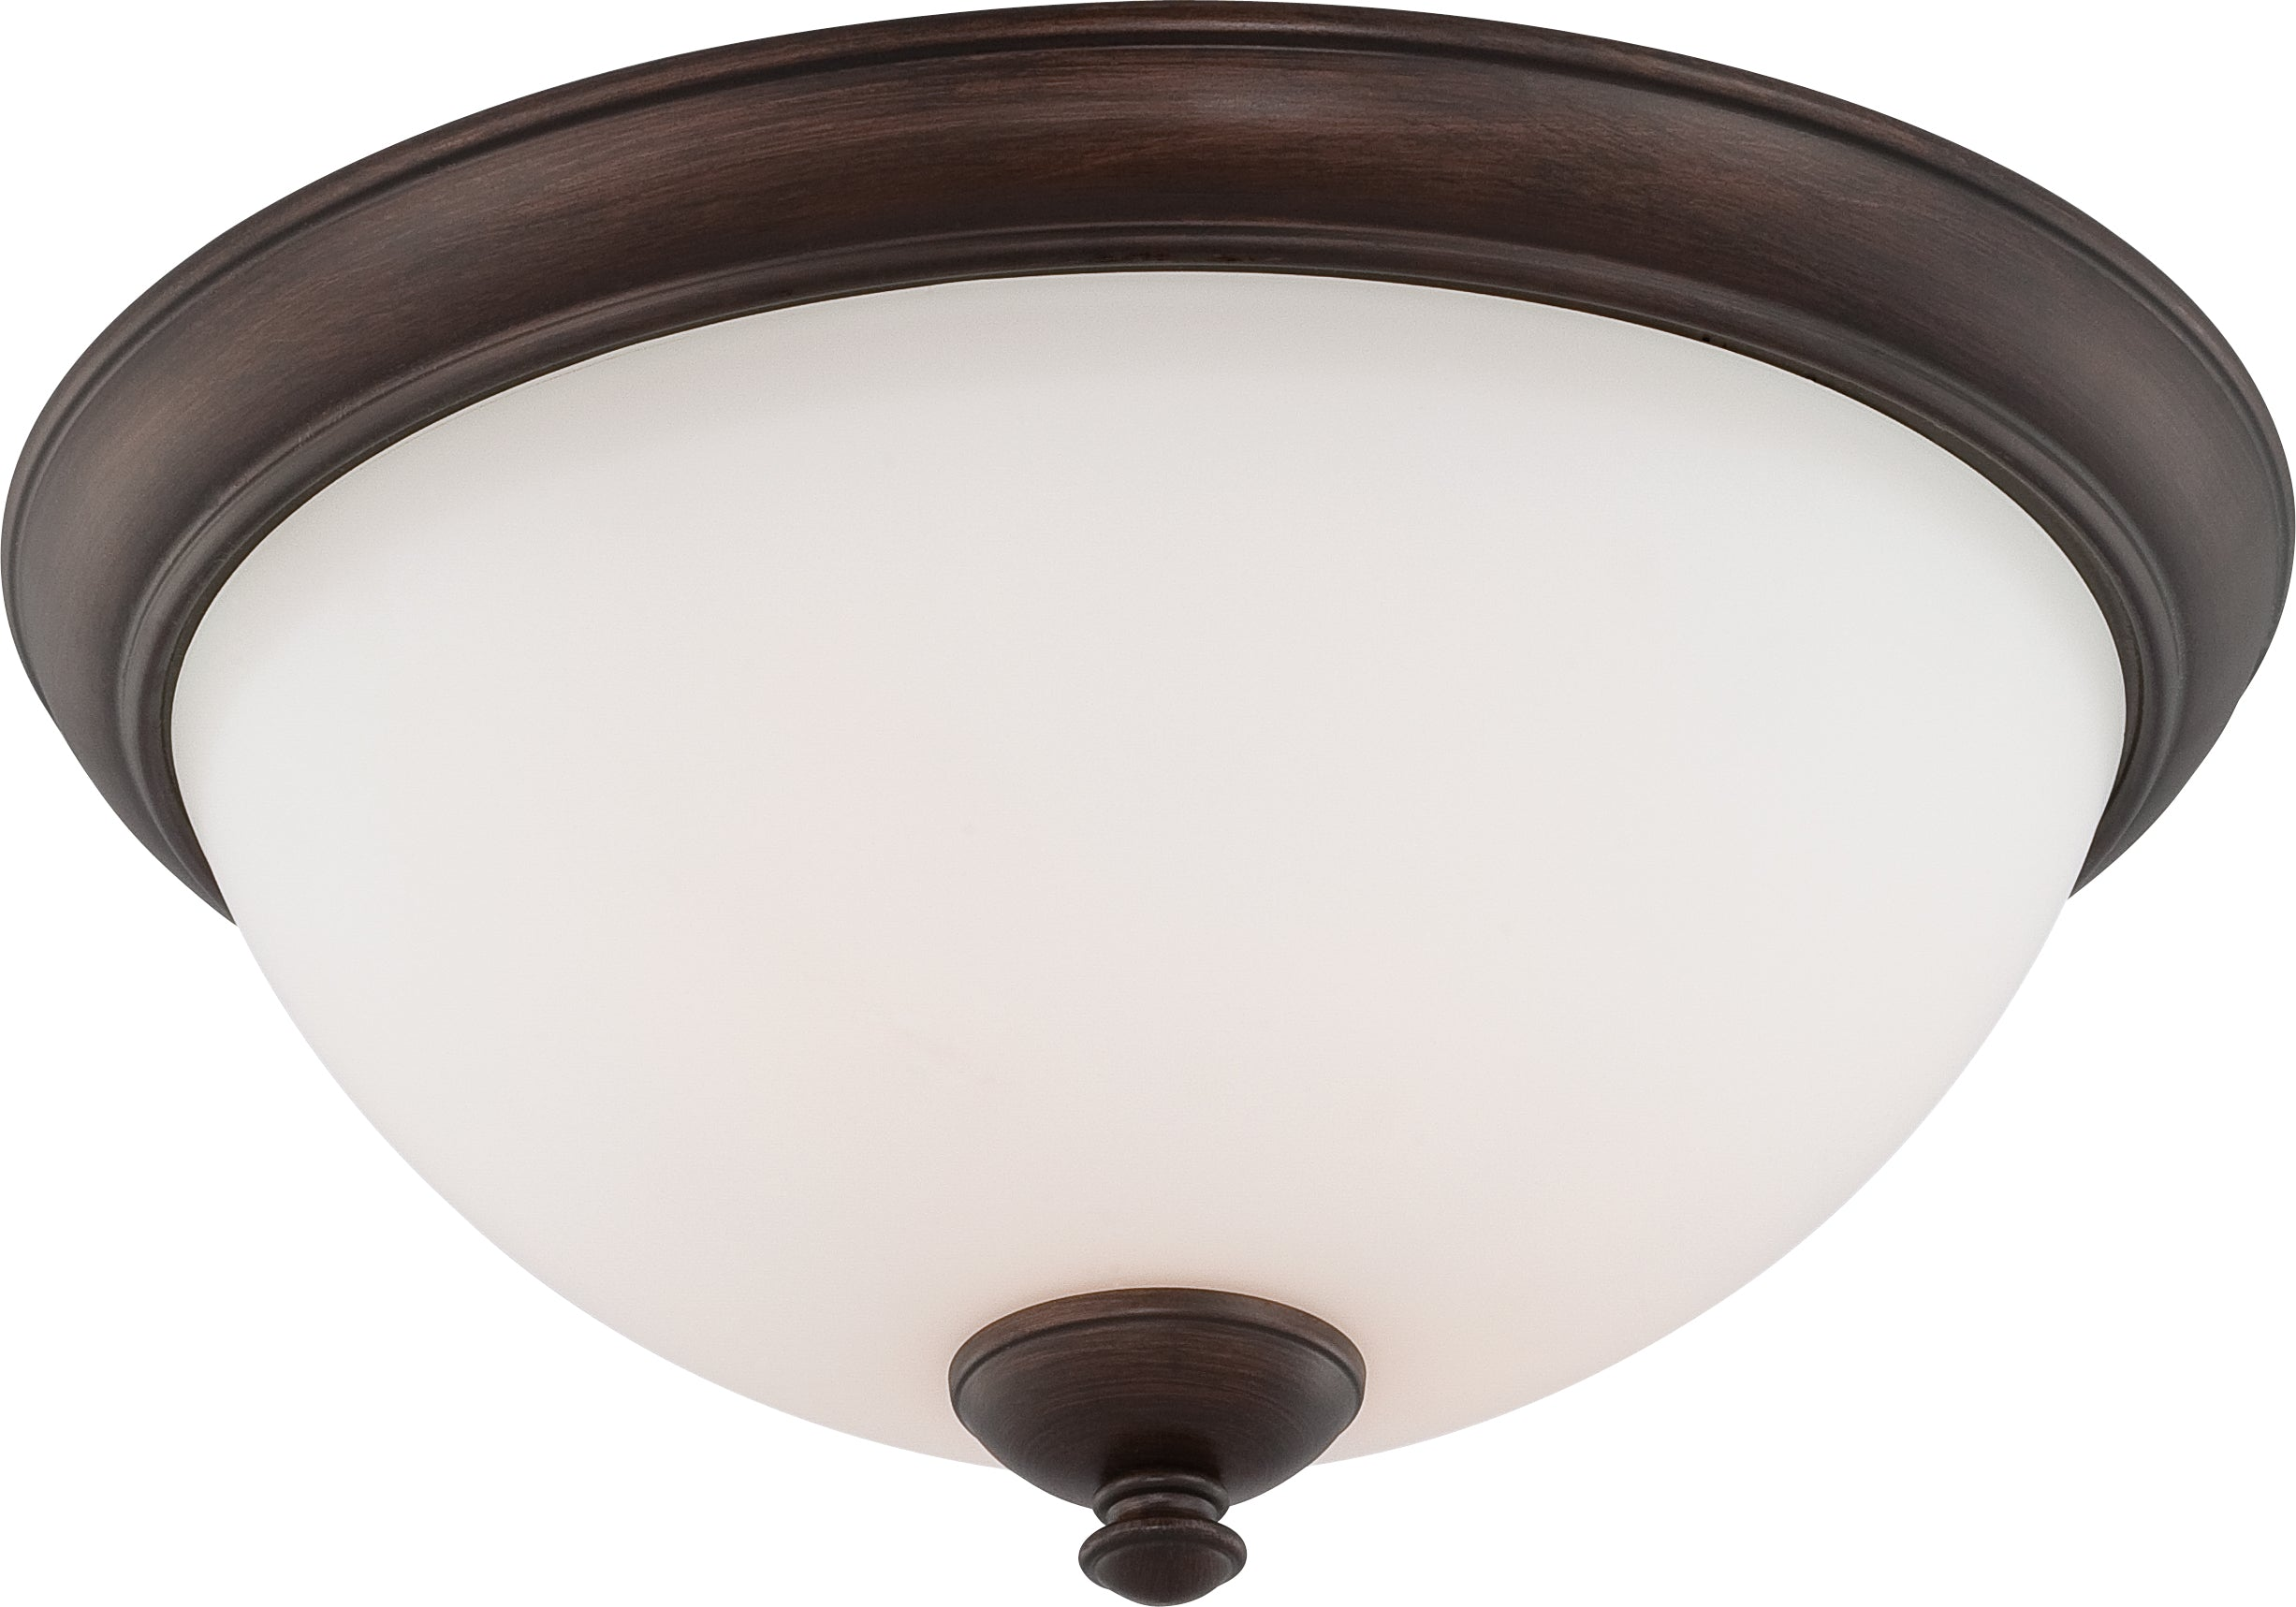 Nuvo Patton 3-Light Flush Dome Fixture w/ Frosted Glass in Prairie Bronze Finish